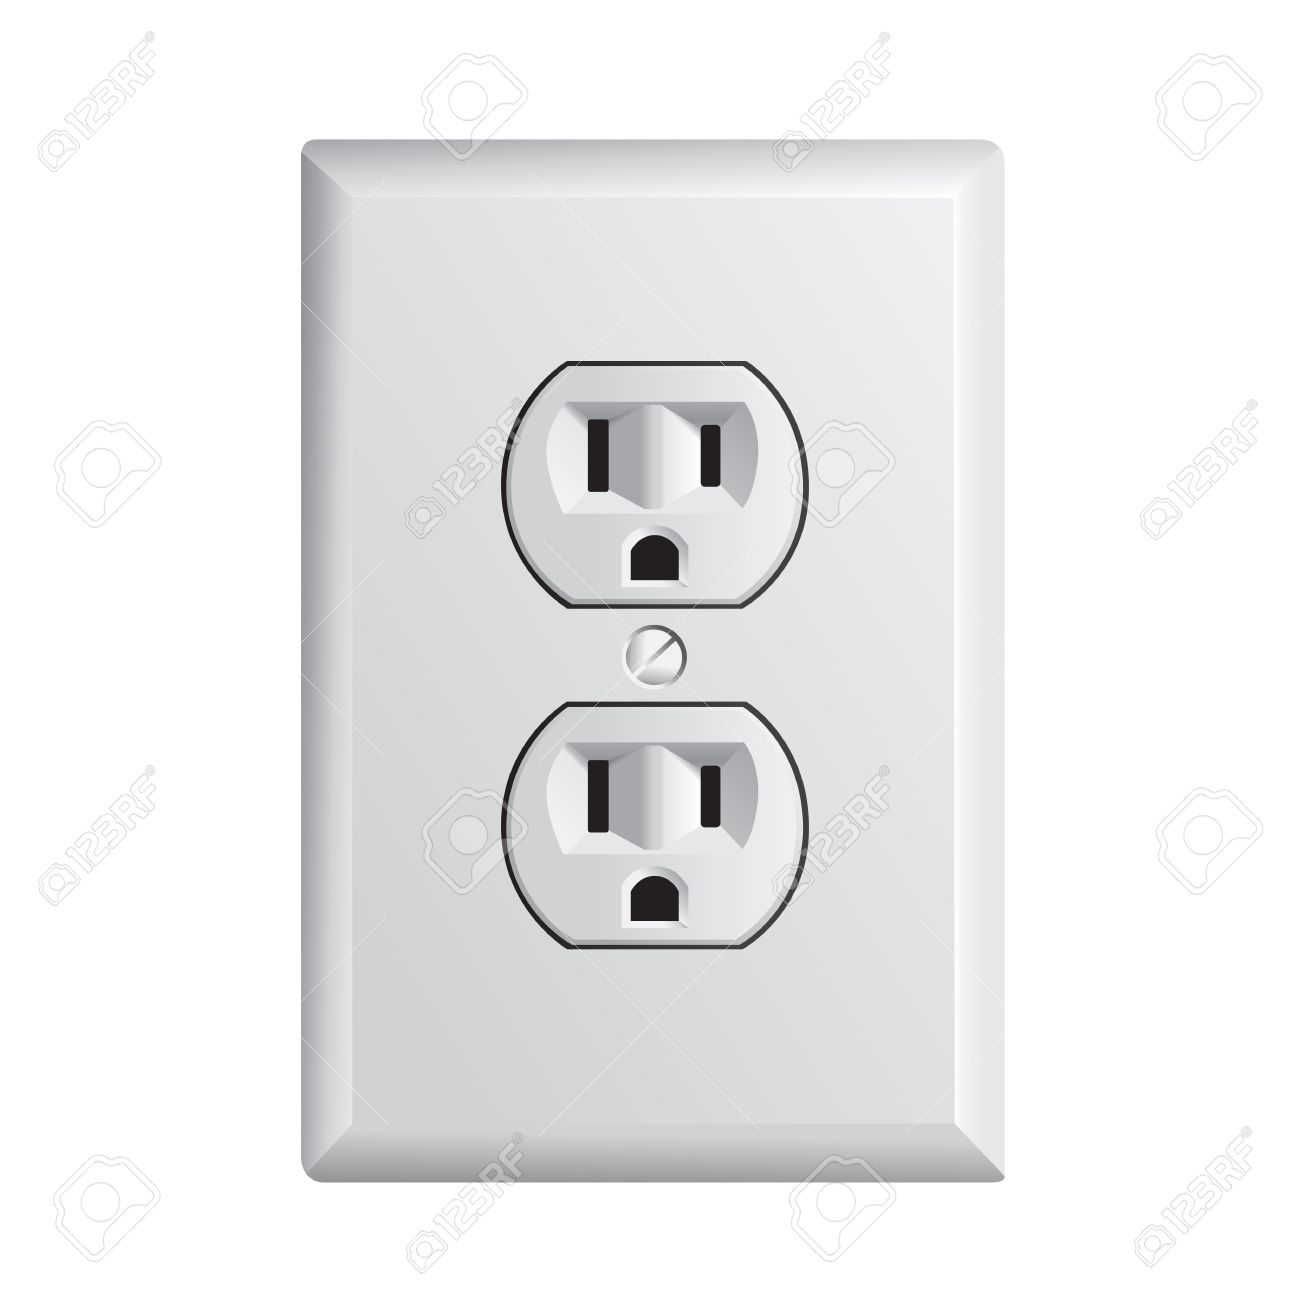 Electrical Outlet In The USA, Power Socket Royalty Free Cliparts ...